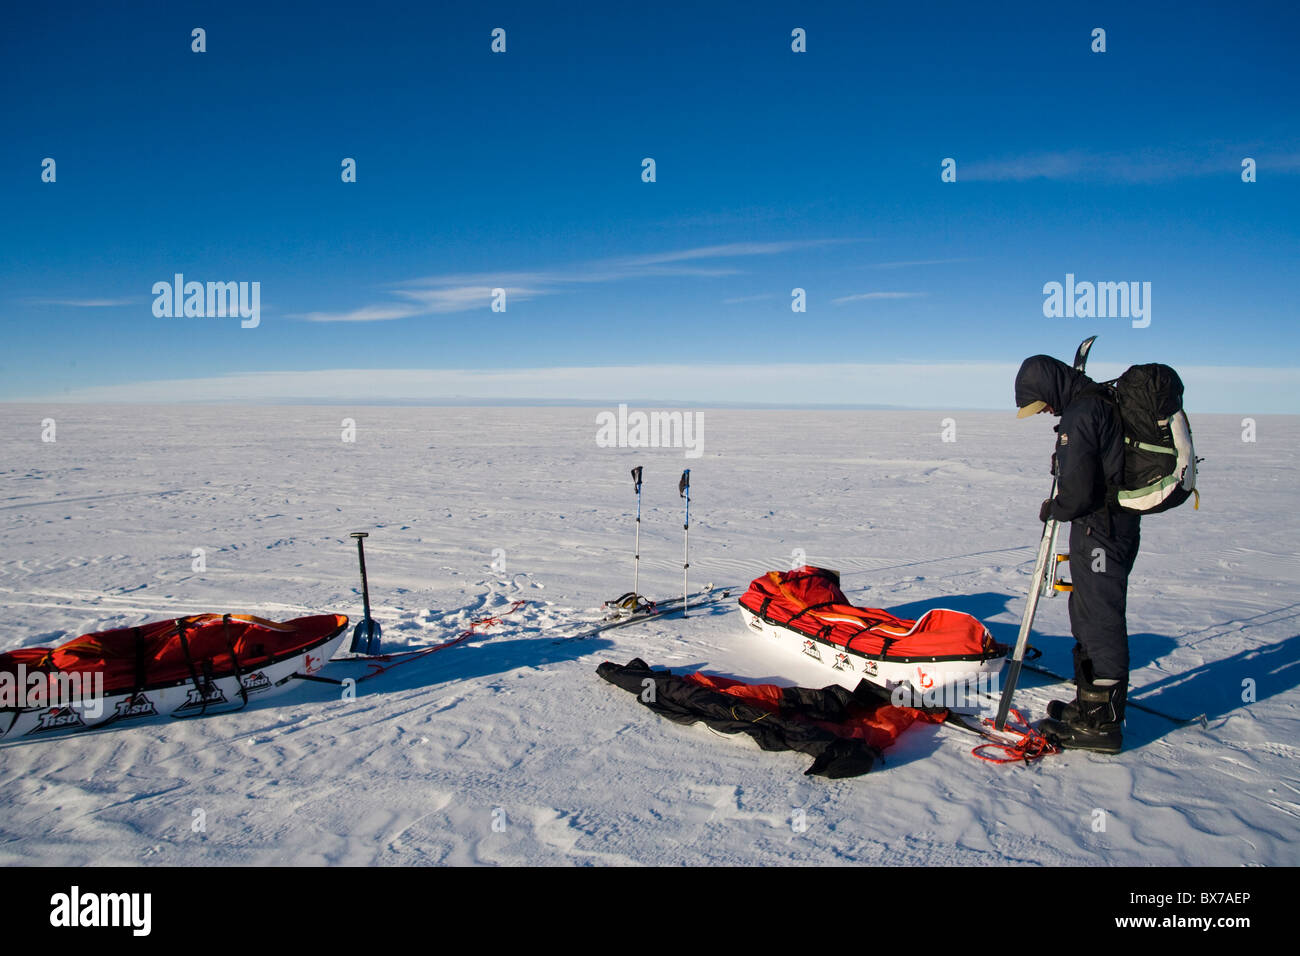 Markante Expedition Camp, im Landesinneren Inlandeis Grönlands, Polarregionen Stockbild